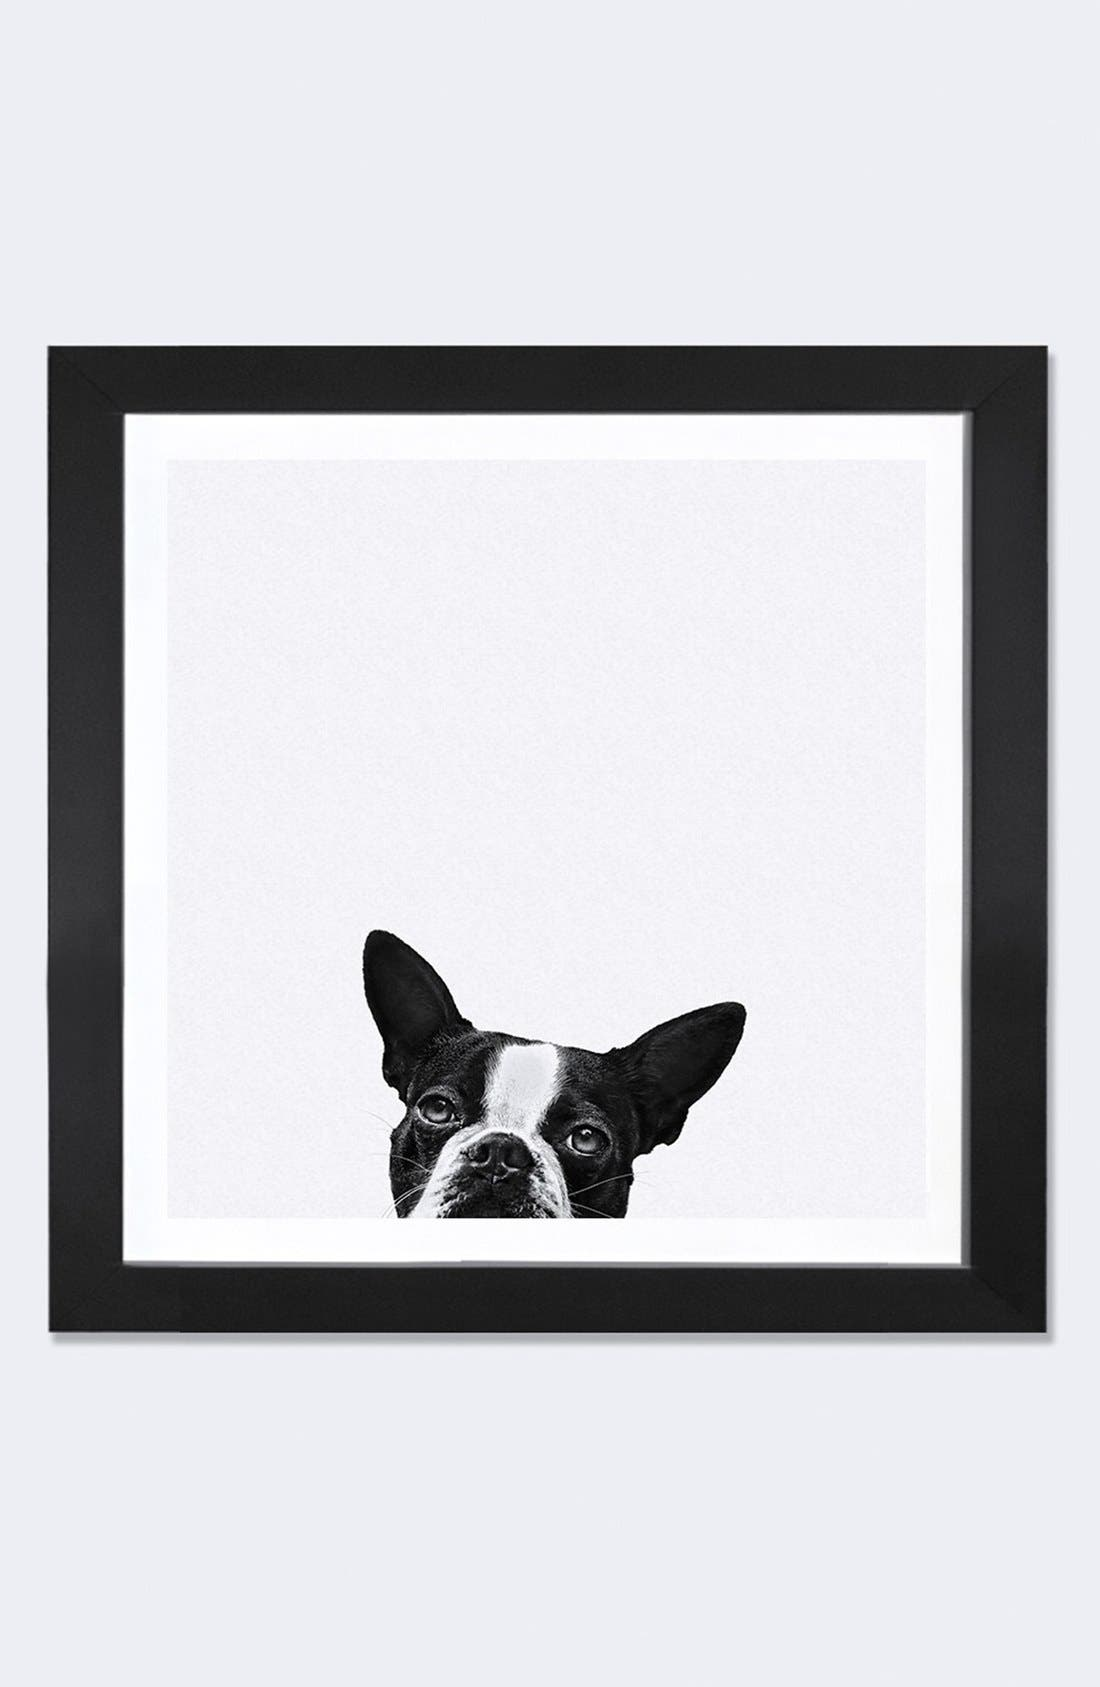 'Loyalty' Framed Fine Art Print,                         Main,                         color, Black